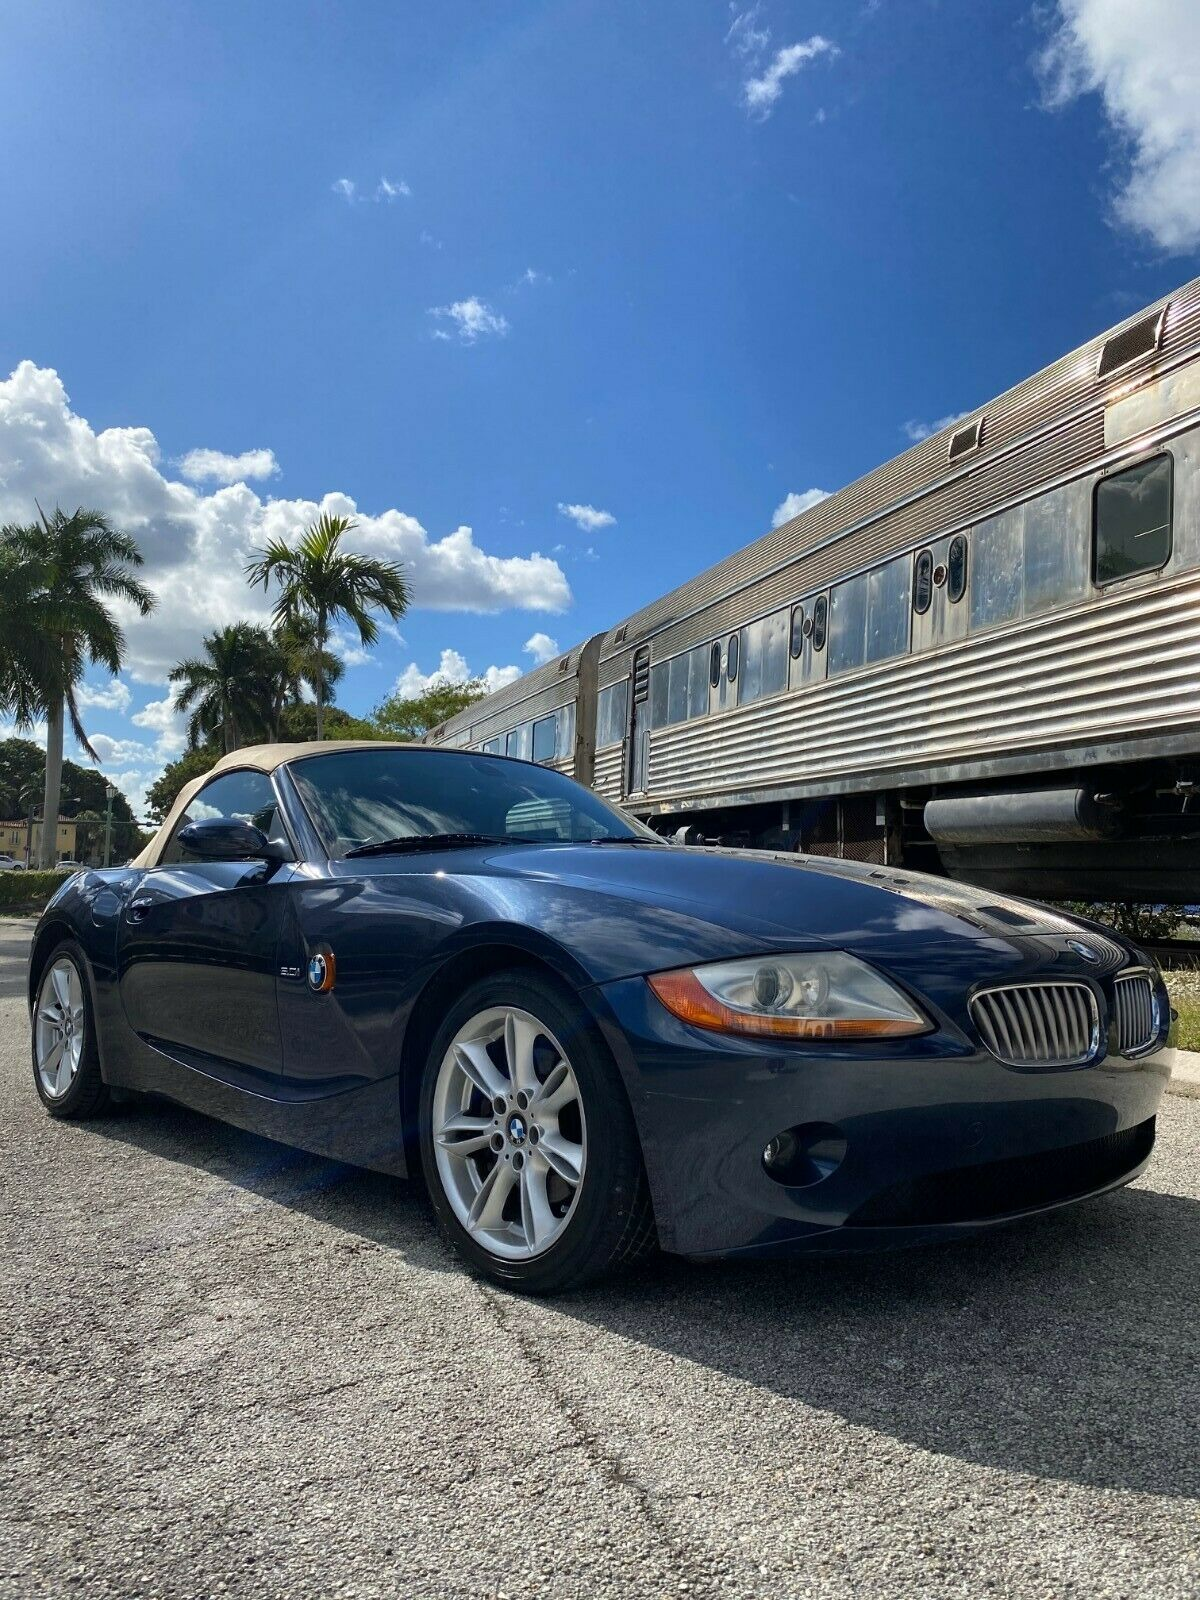 2003 BMW Z4 3.0i~Power Top~Loaded~Car Fax Cert~New Tires~Cream Puff~Non Smoker!